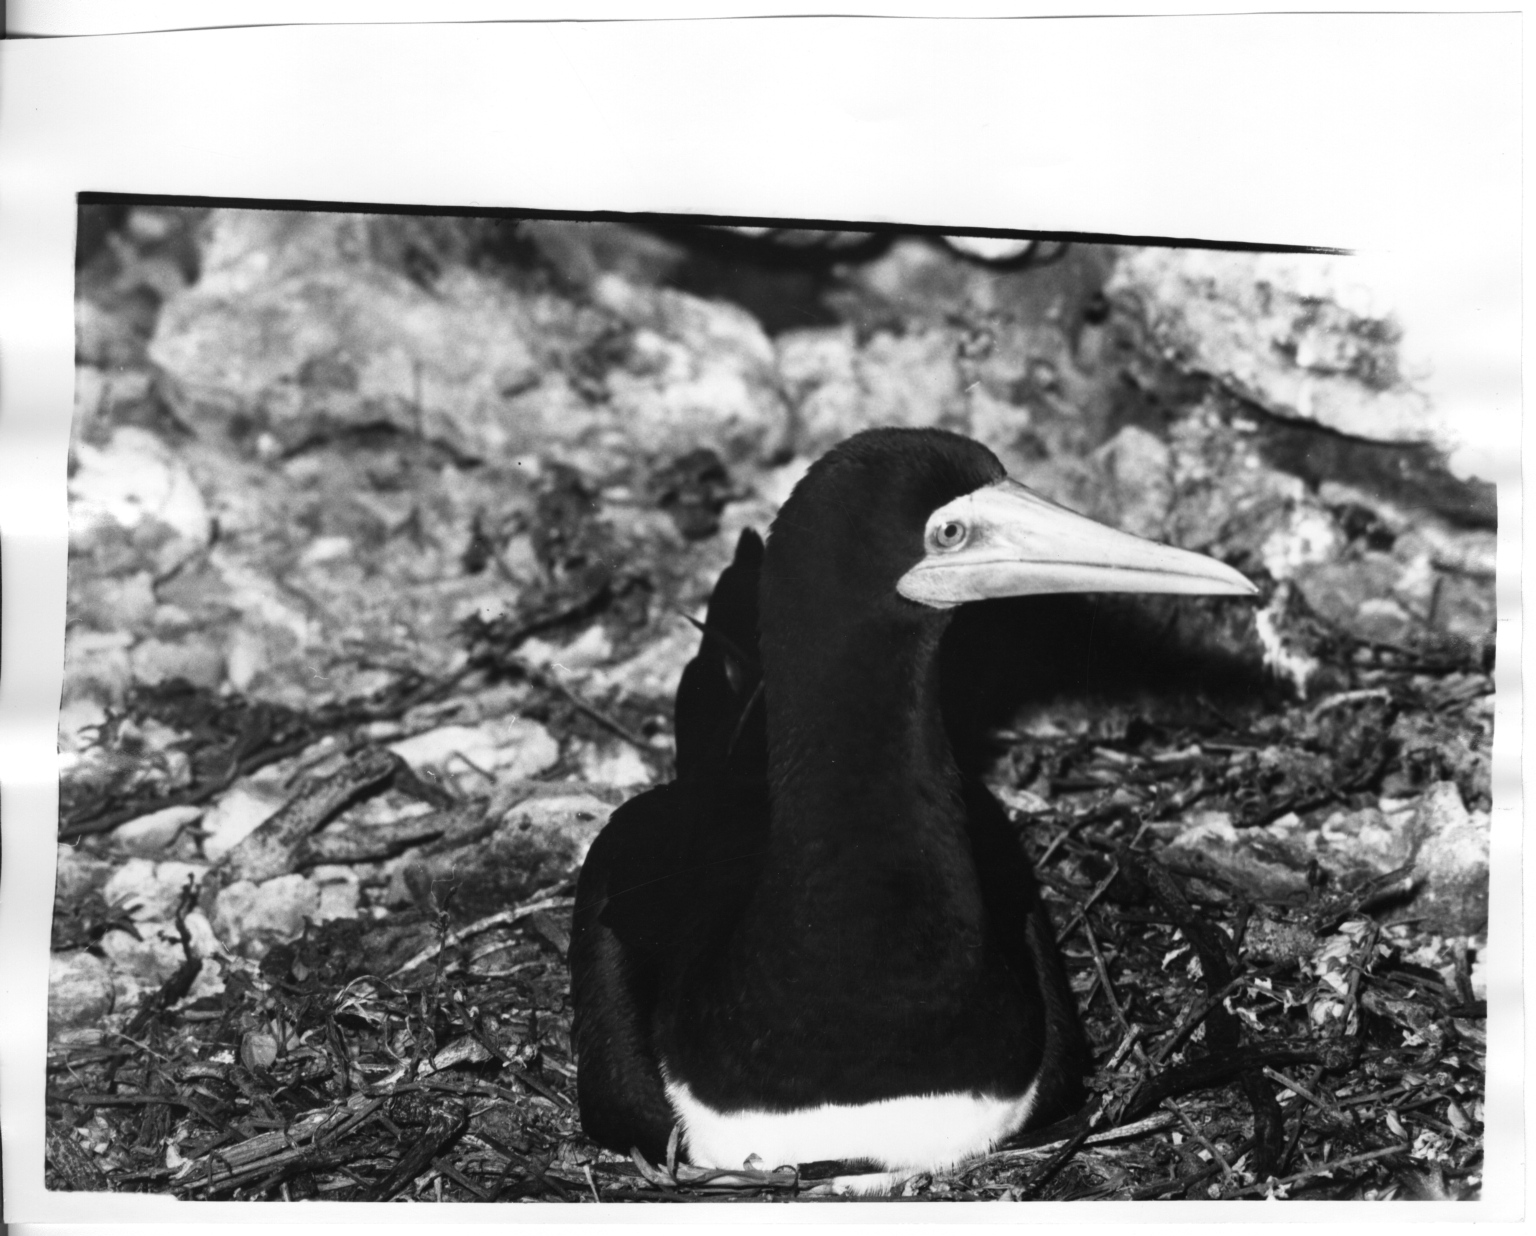 Brown Booby and eggs